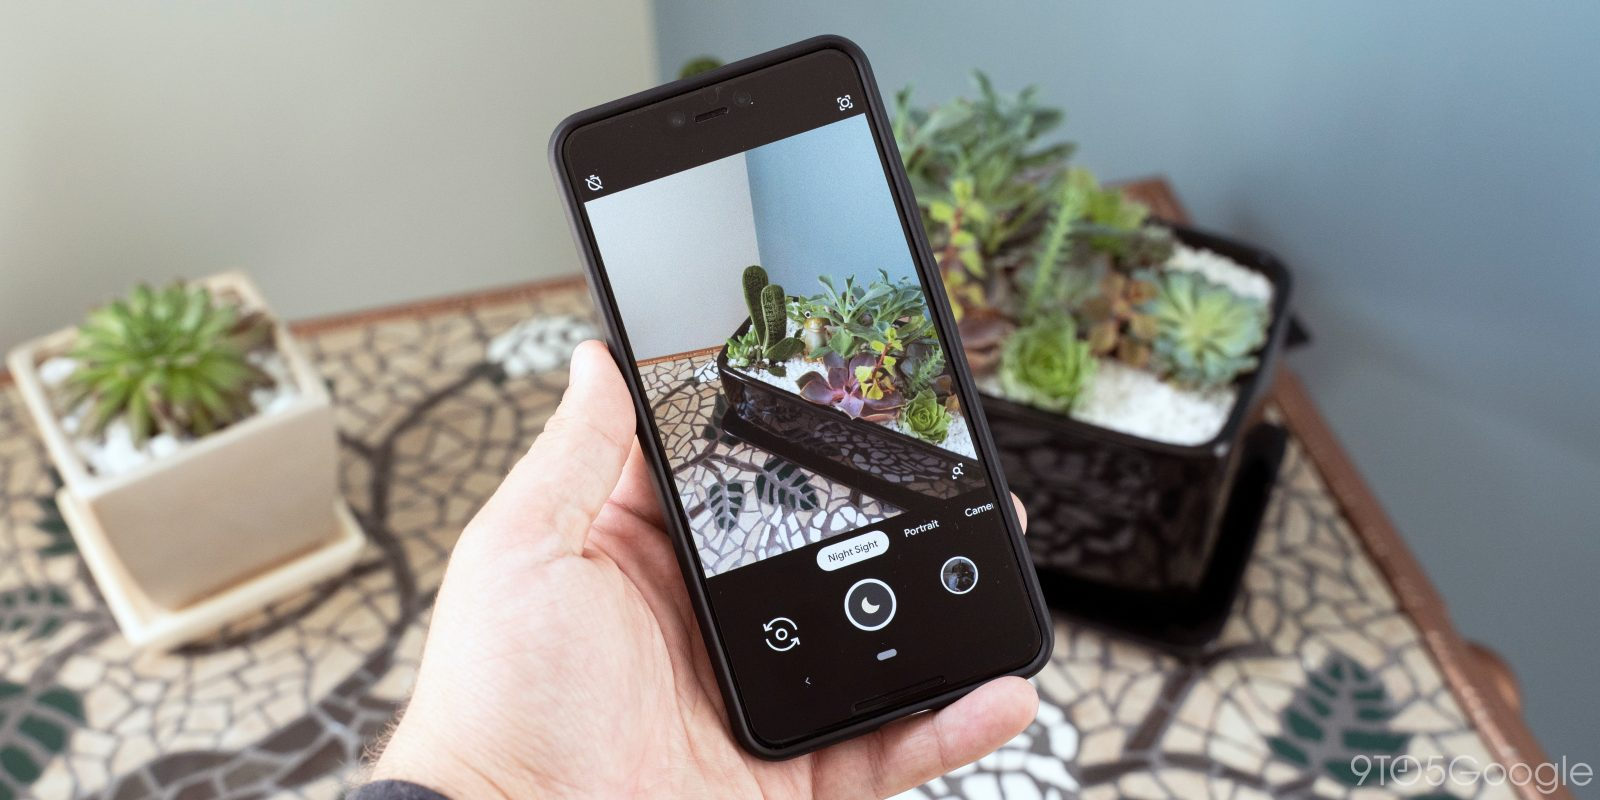 Top Stories: Google Camera leaks, 'Fast Share,' more - 9to5Google